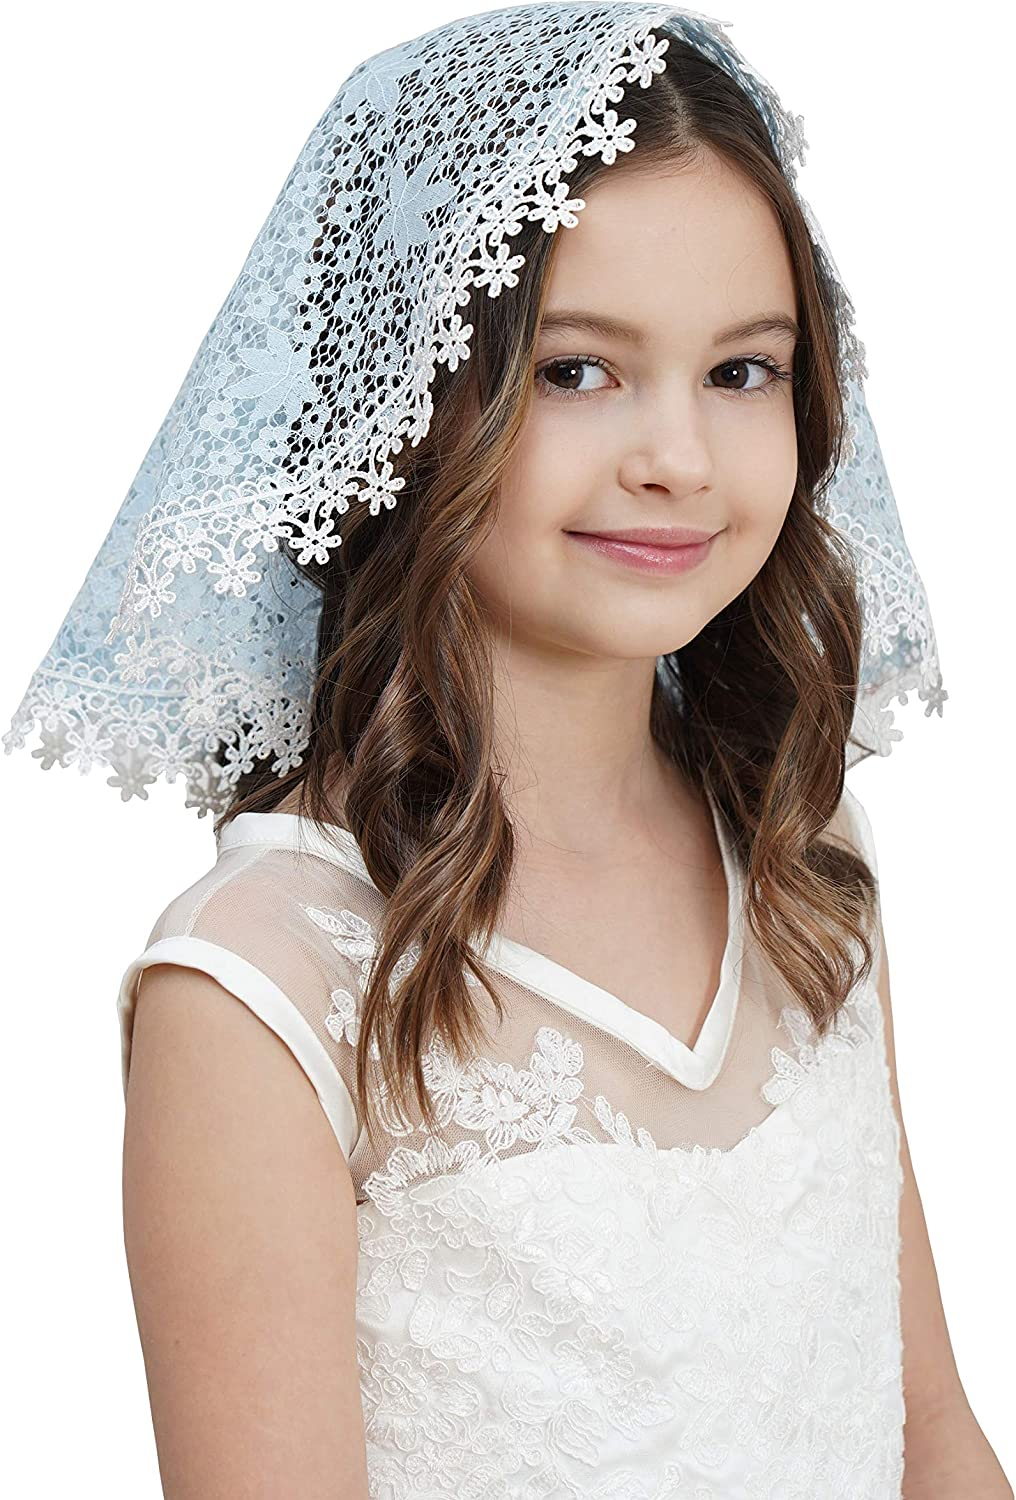 Lace Head Covers for Girls First Cummunion Veils Girl Mass Headcovering V88